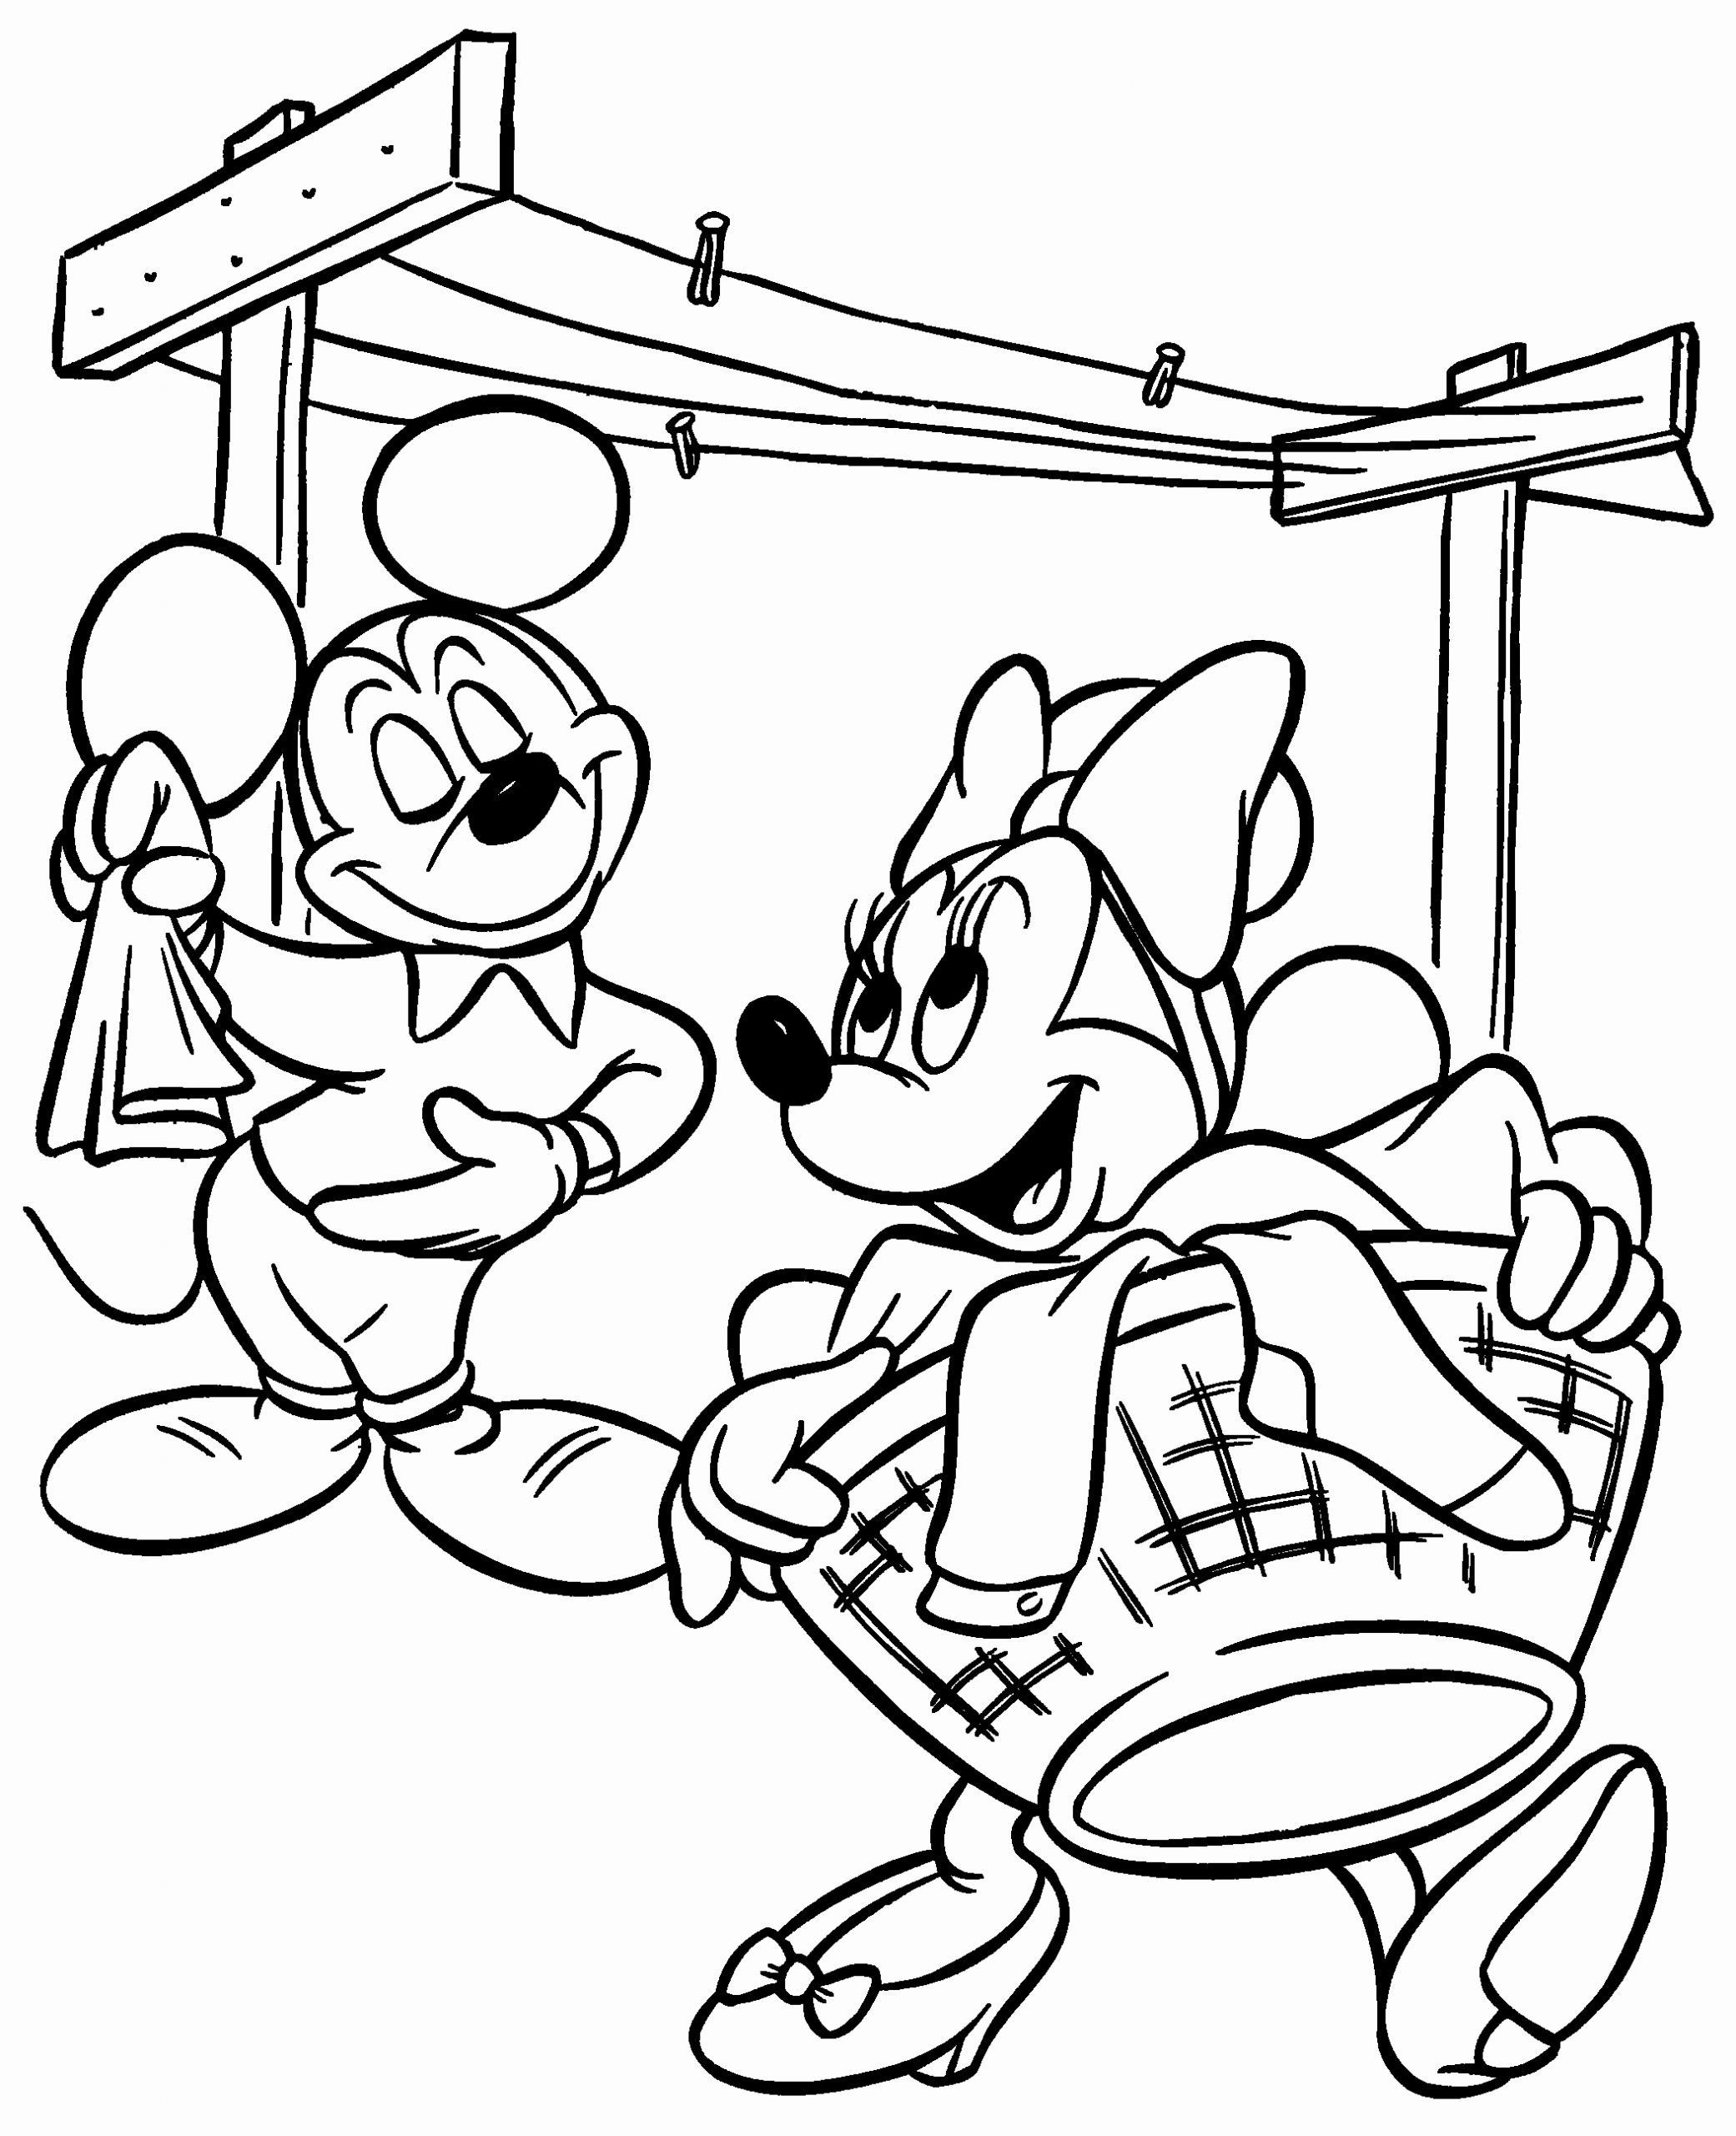 Coloring Pages For Cartoon Characters